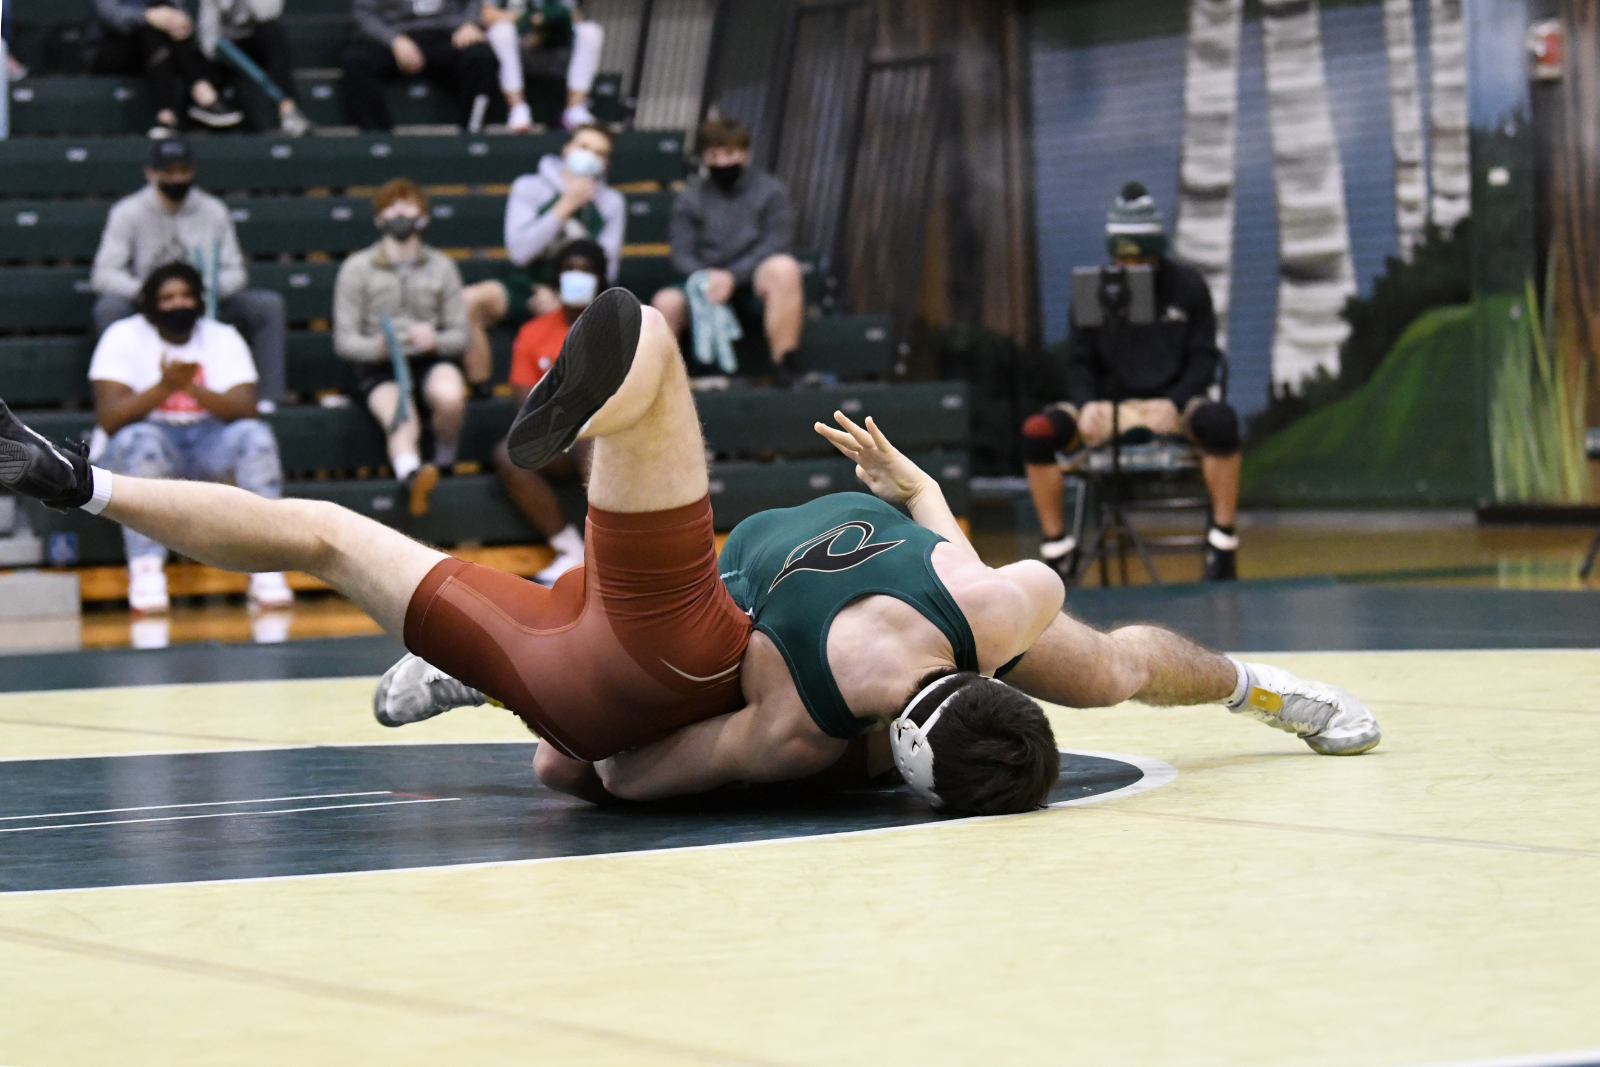 Photo Gallery: Wrestling vs Ashley Ridge in Playoffs 2-13-21 (Part 2)